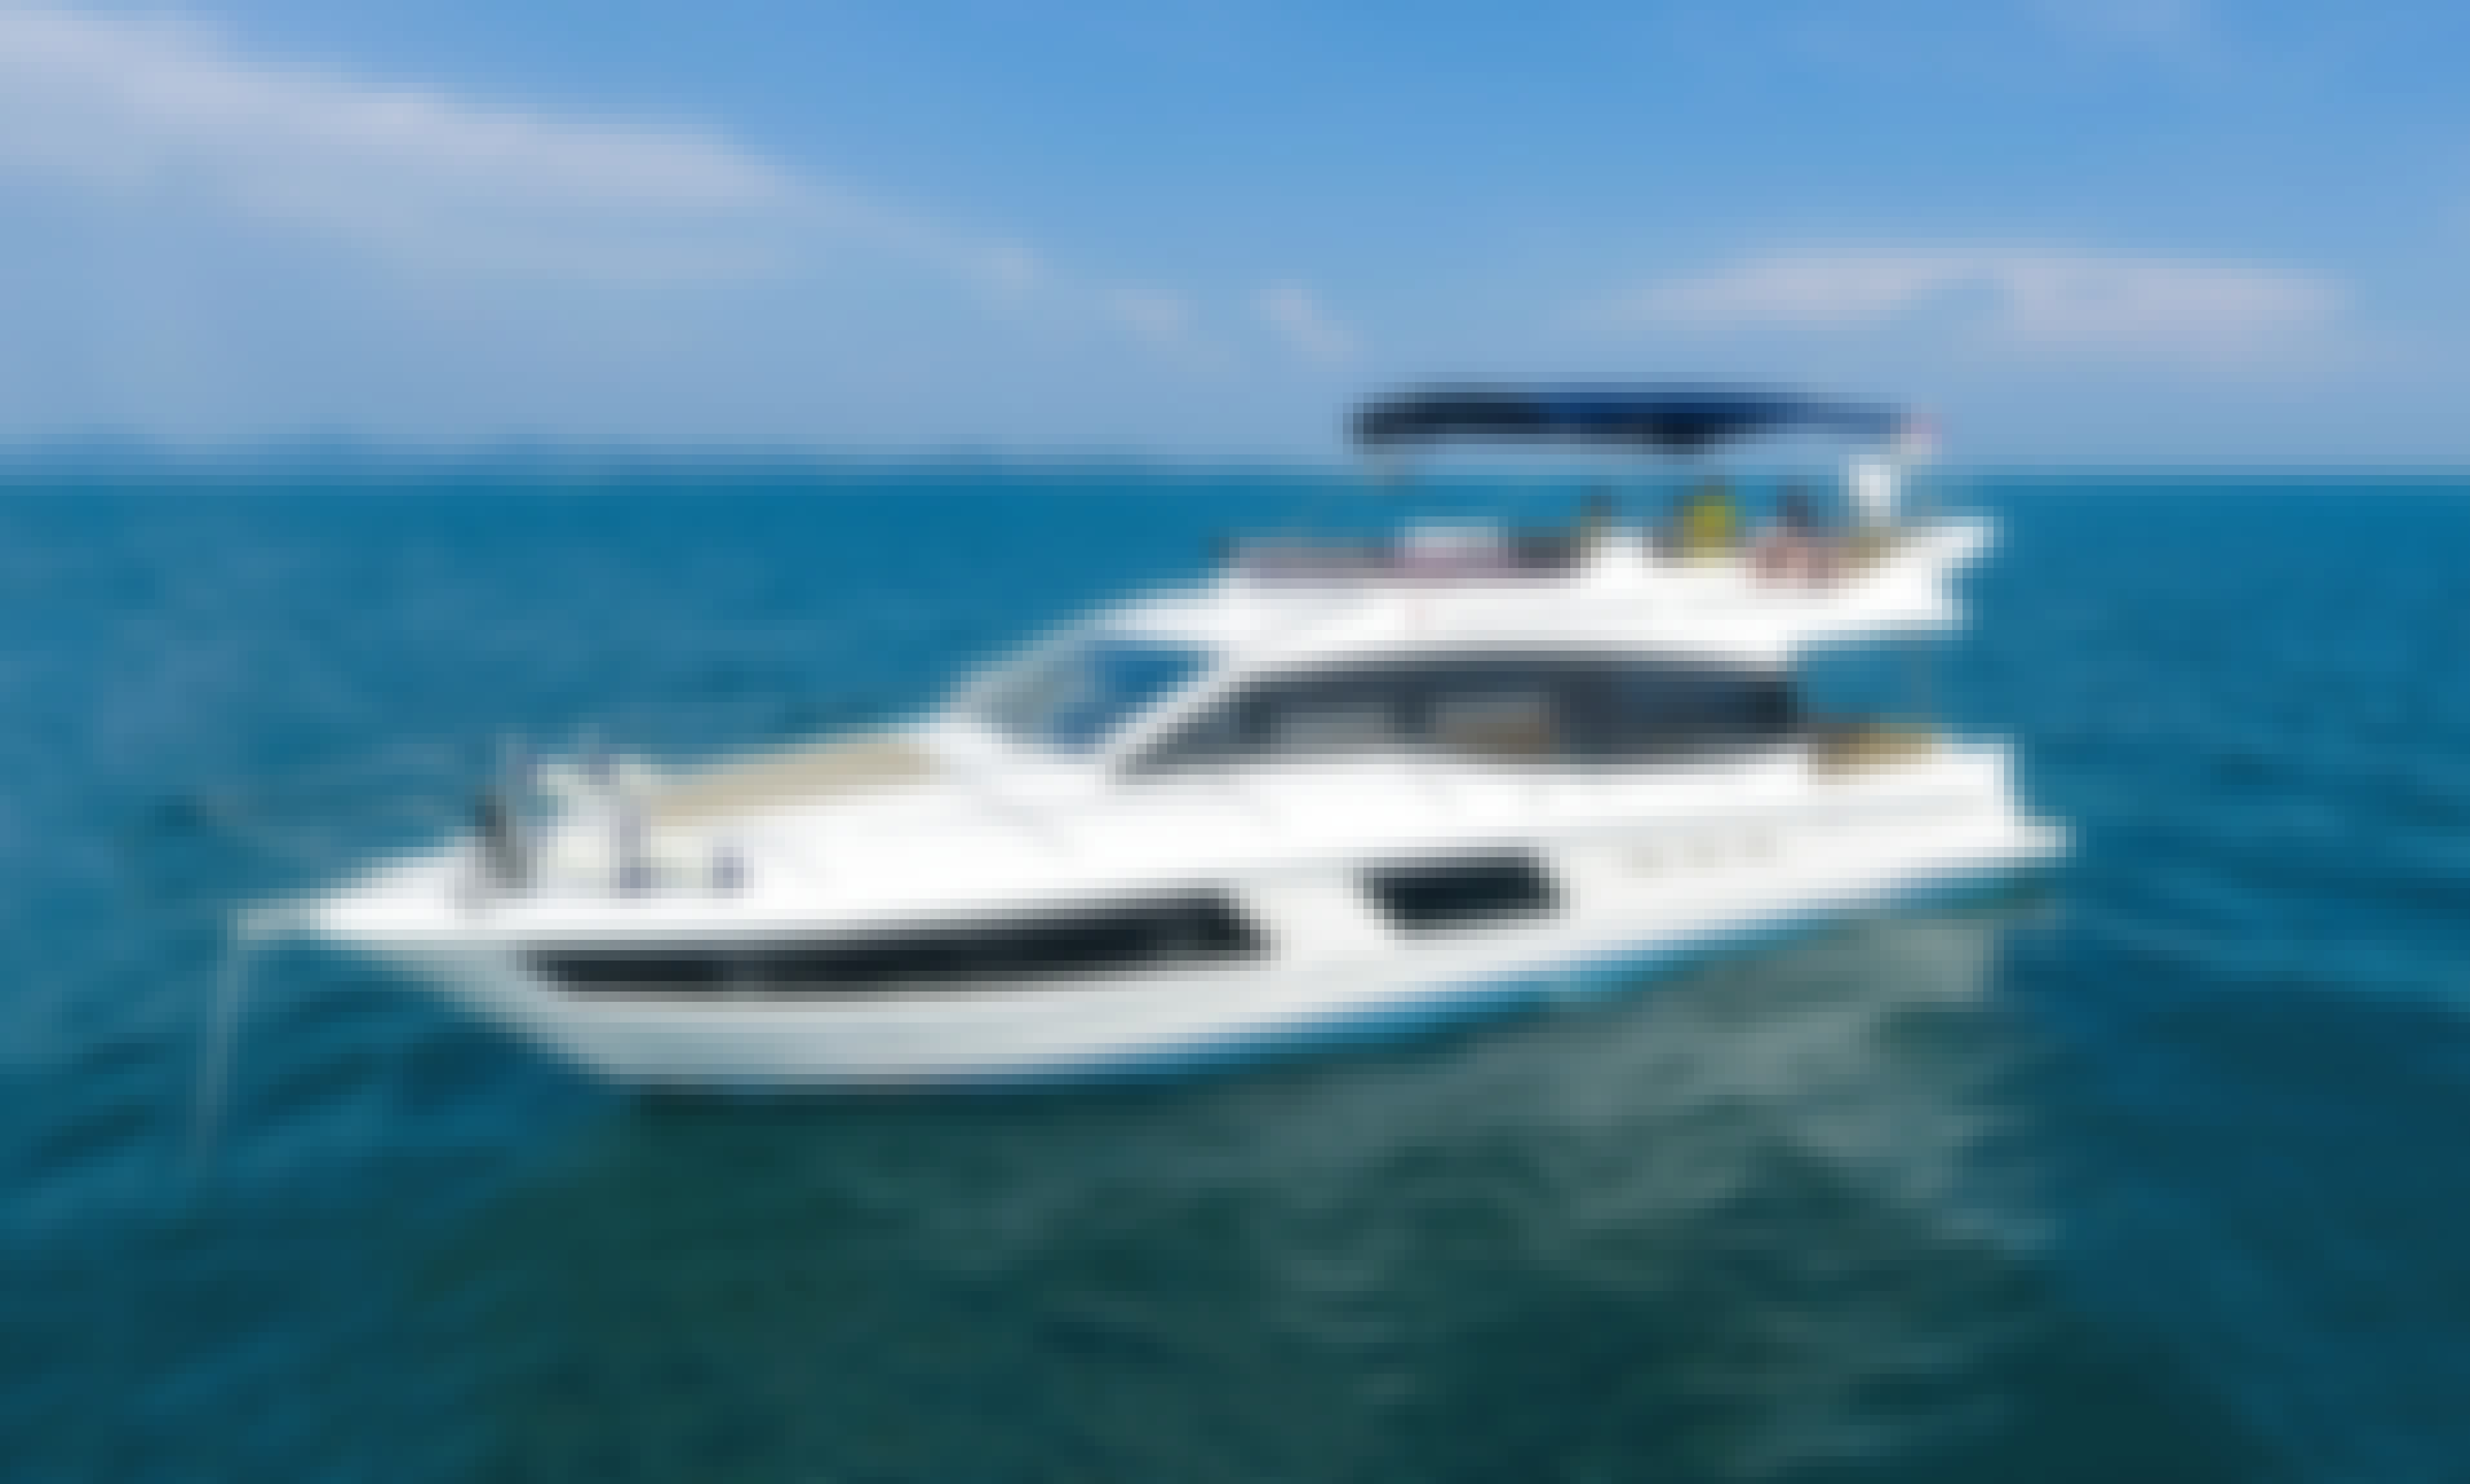 Rent yacht in Dubai 48 ft  Motor Yacht for 21 pax - Premium collection